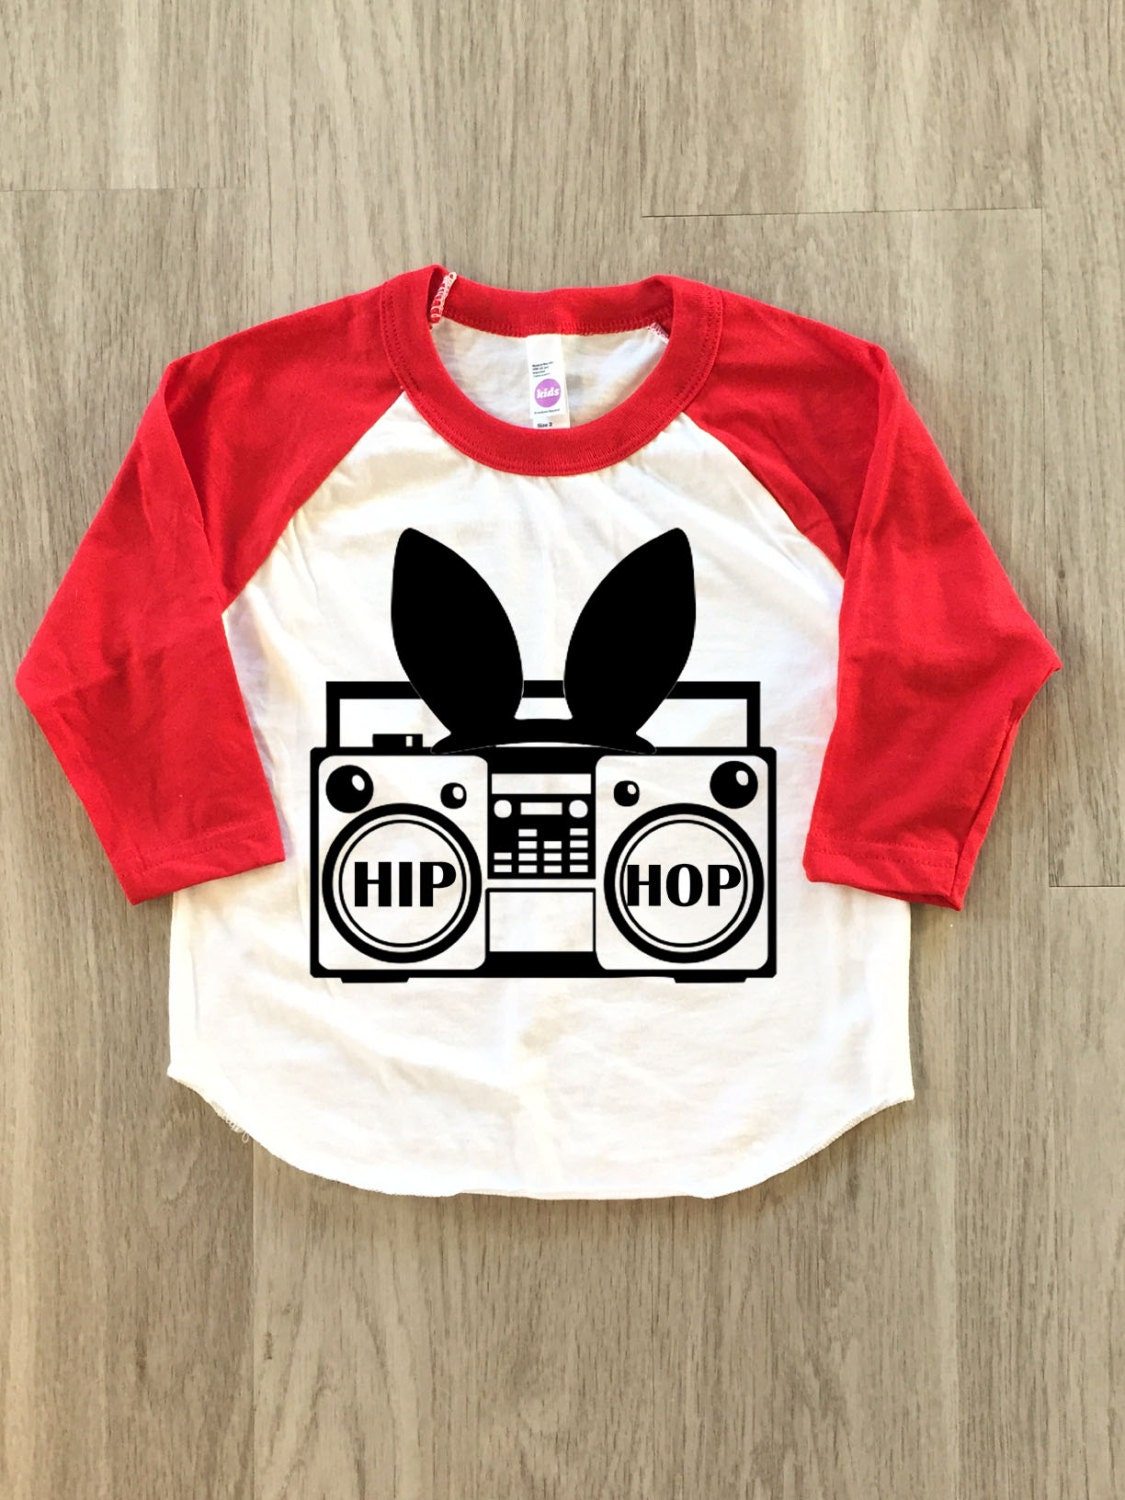 Hip Hop Boom Box Easter shirt baby boy or girl clothes